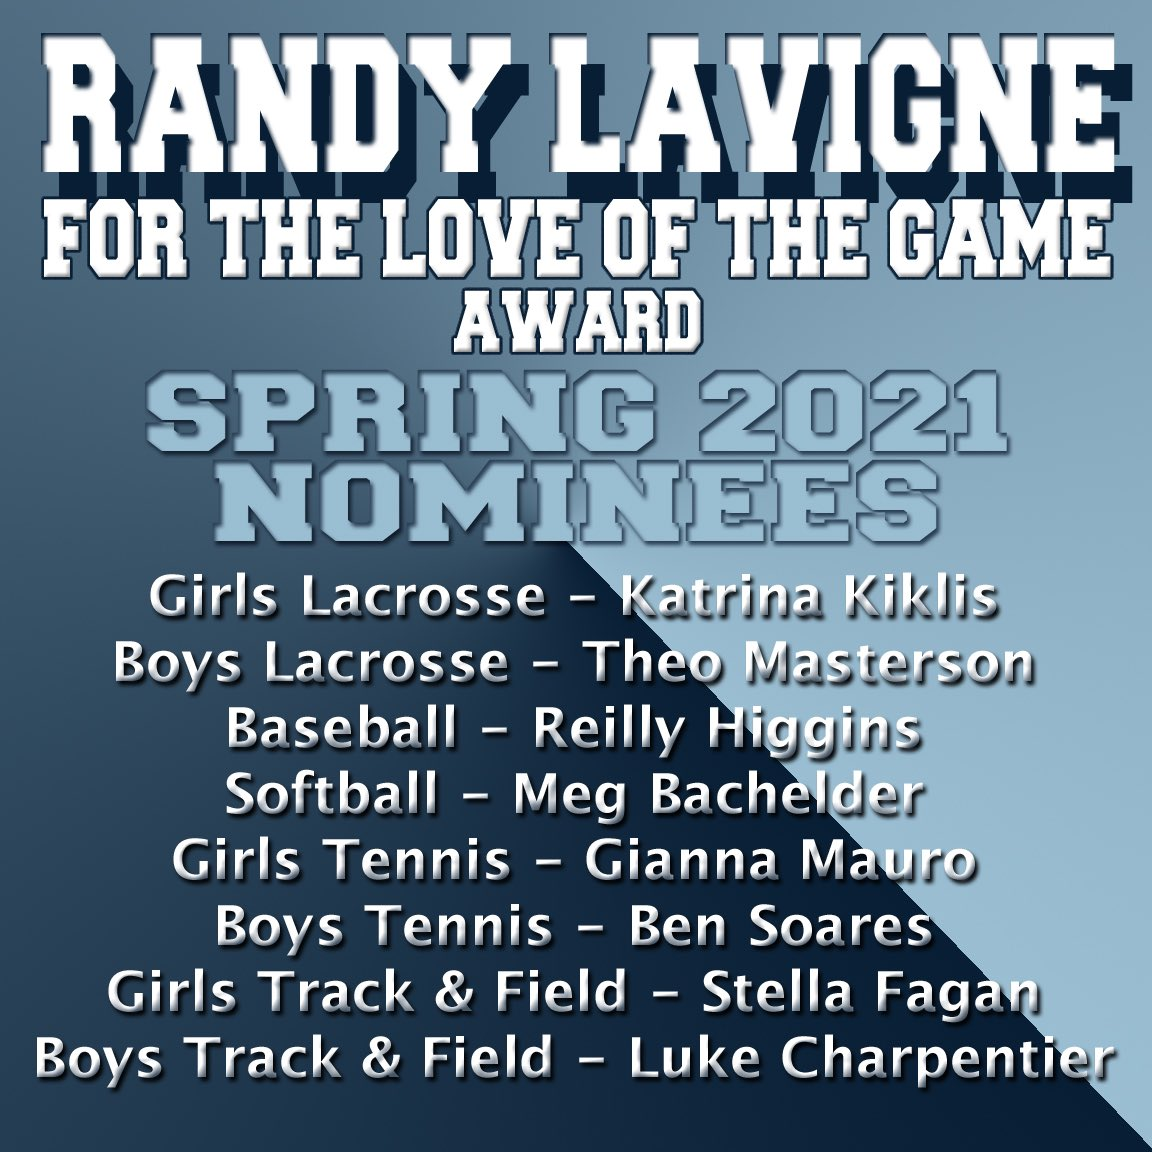 """test Twitter Media - Check out Instagram to see who was chosen as our two Spring 2021 Randy Lavigne """"For the Love of the Game"""" Award recipients! https://t.co/ZO9ulQ9jO4"""